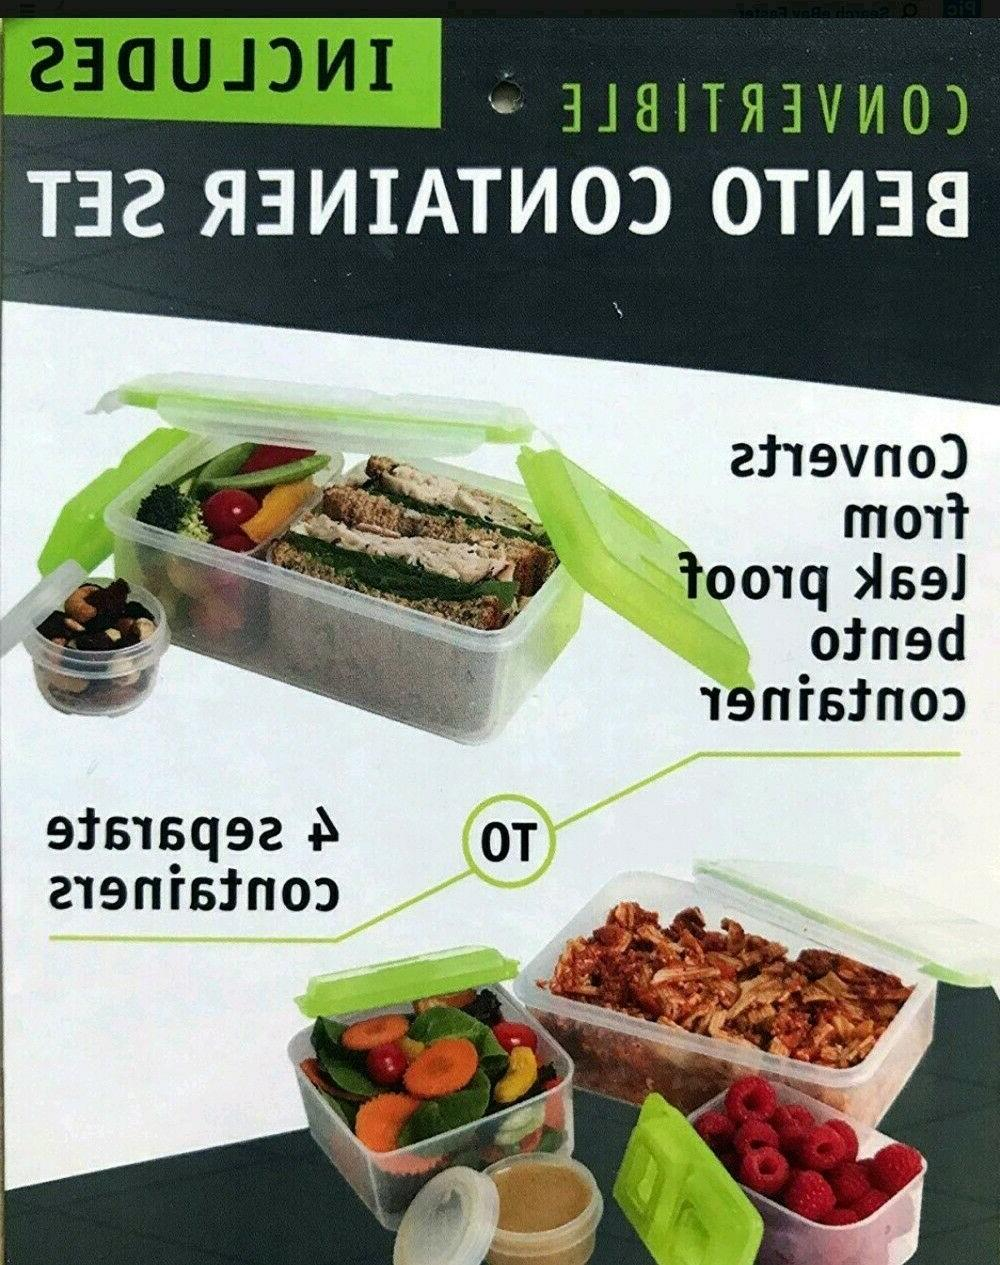 Ultra by Zone Expandable Lunch 2 Blk/Green